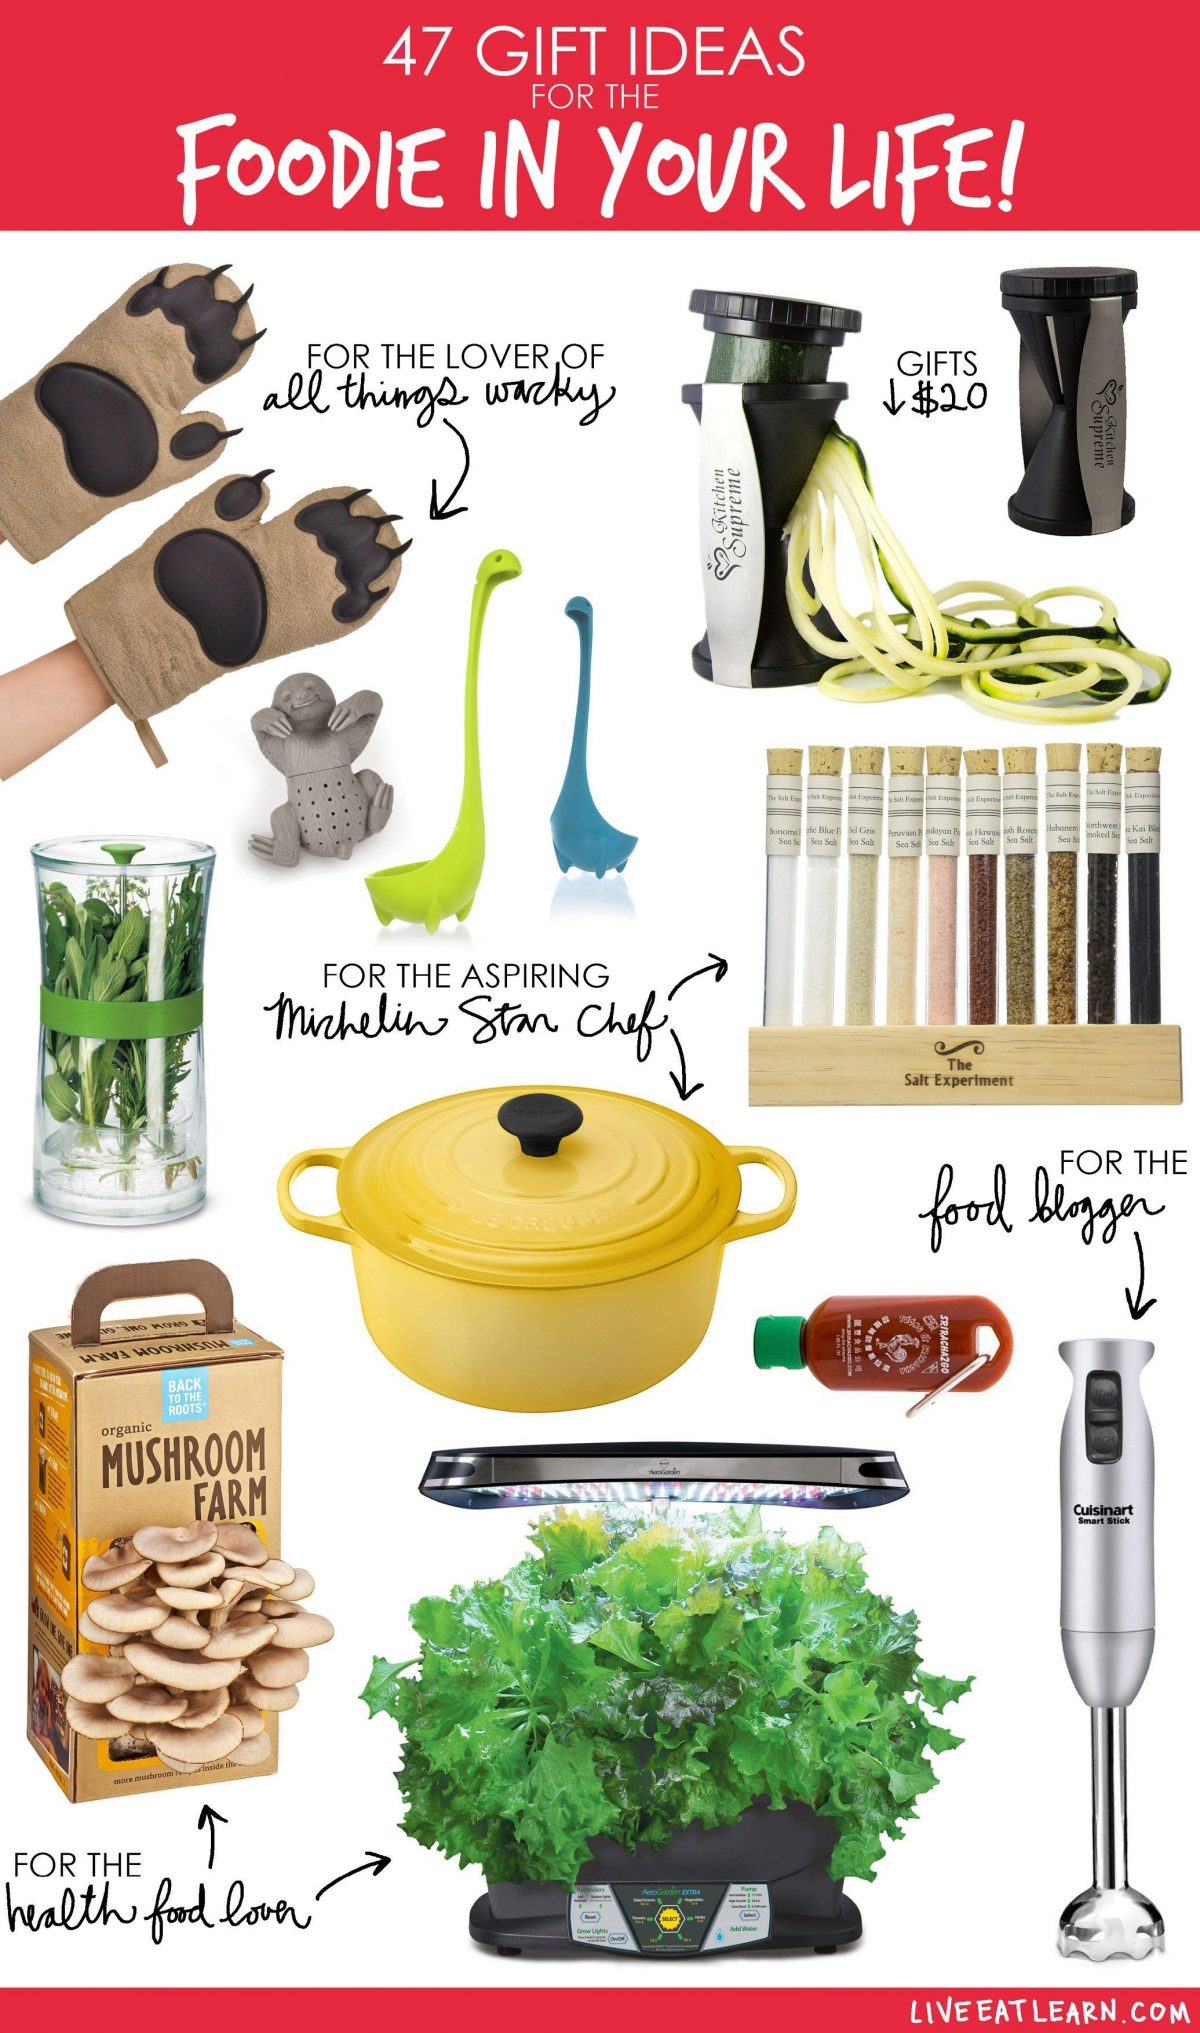 Holiday Gifts for the Foodie in your Life